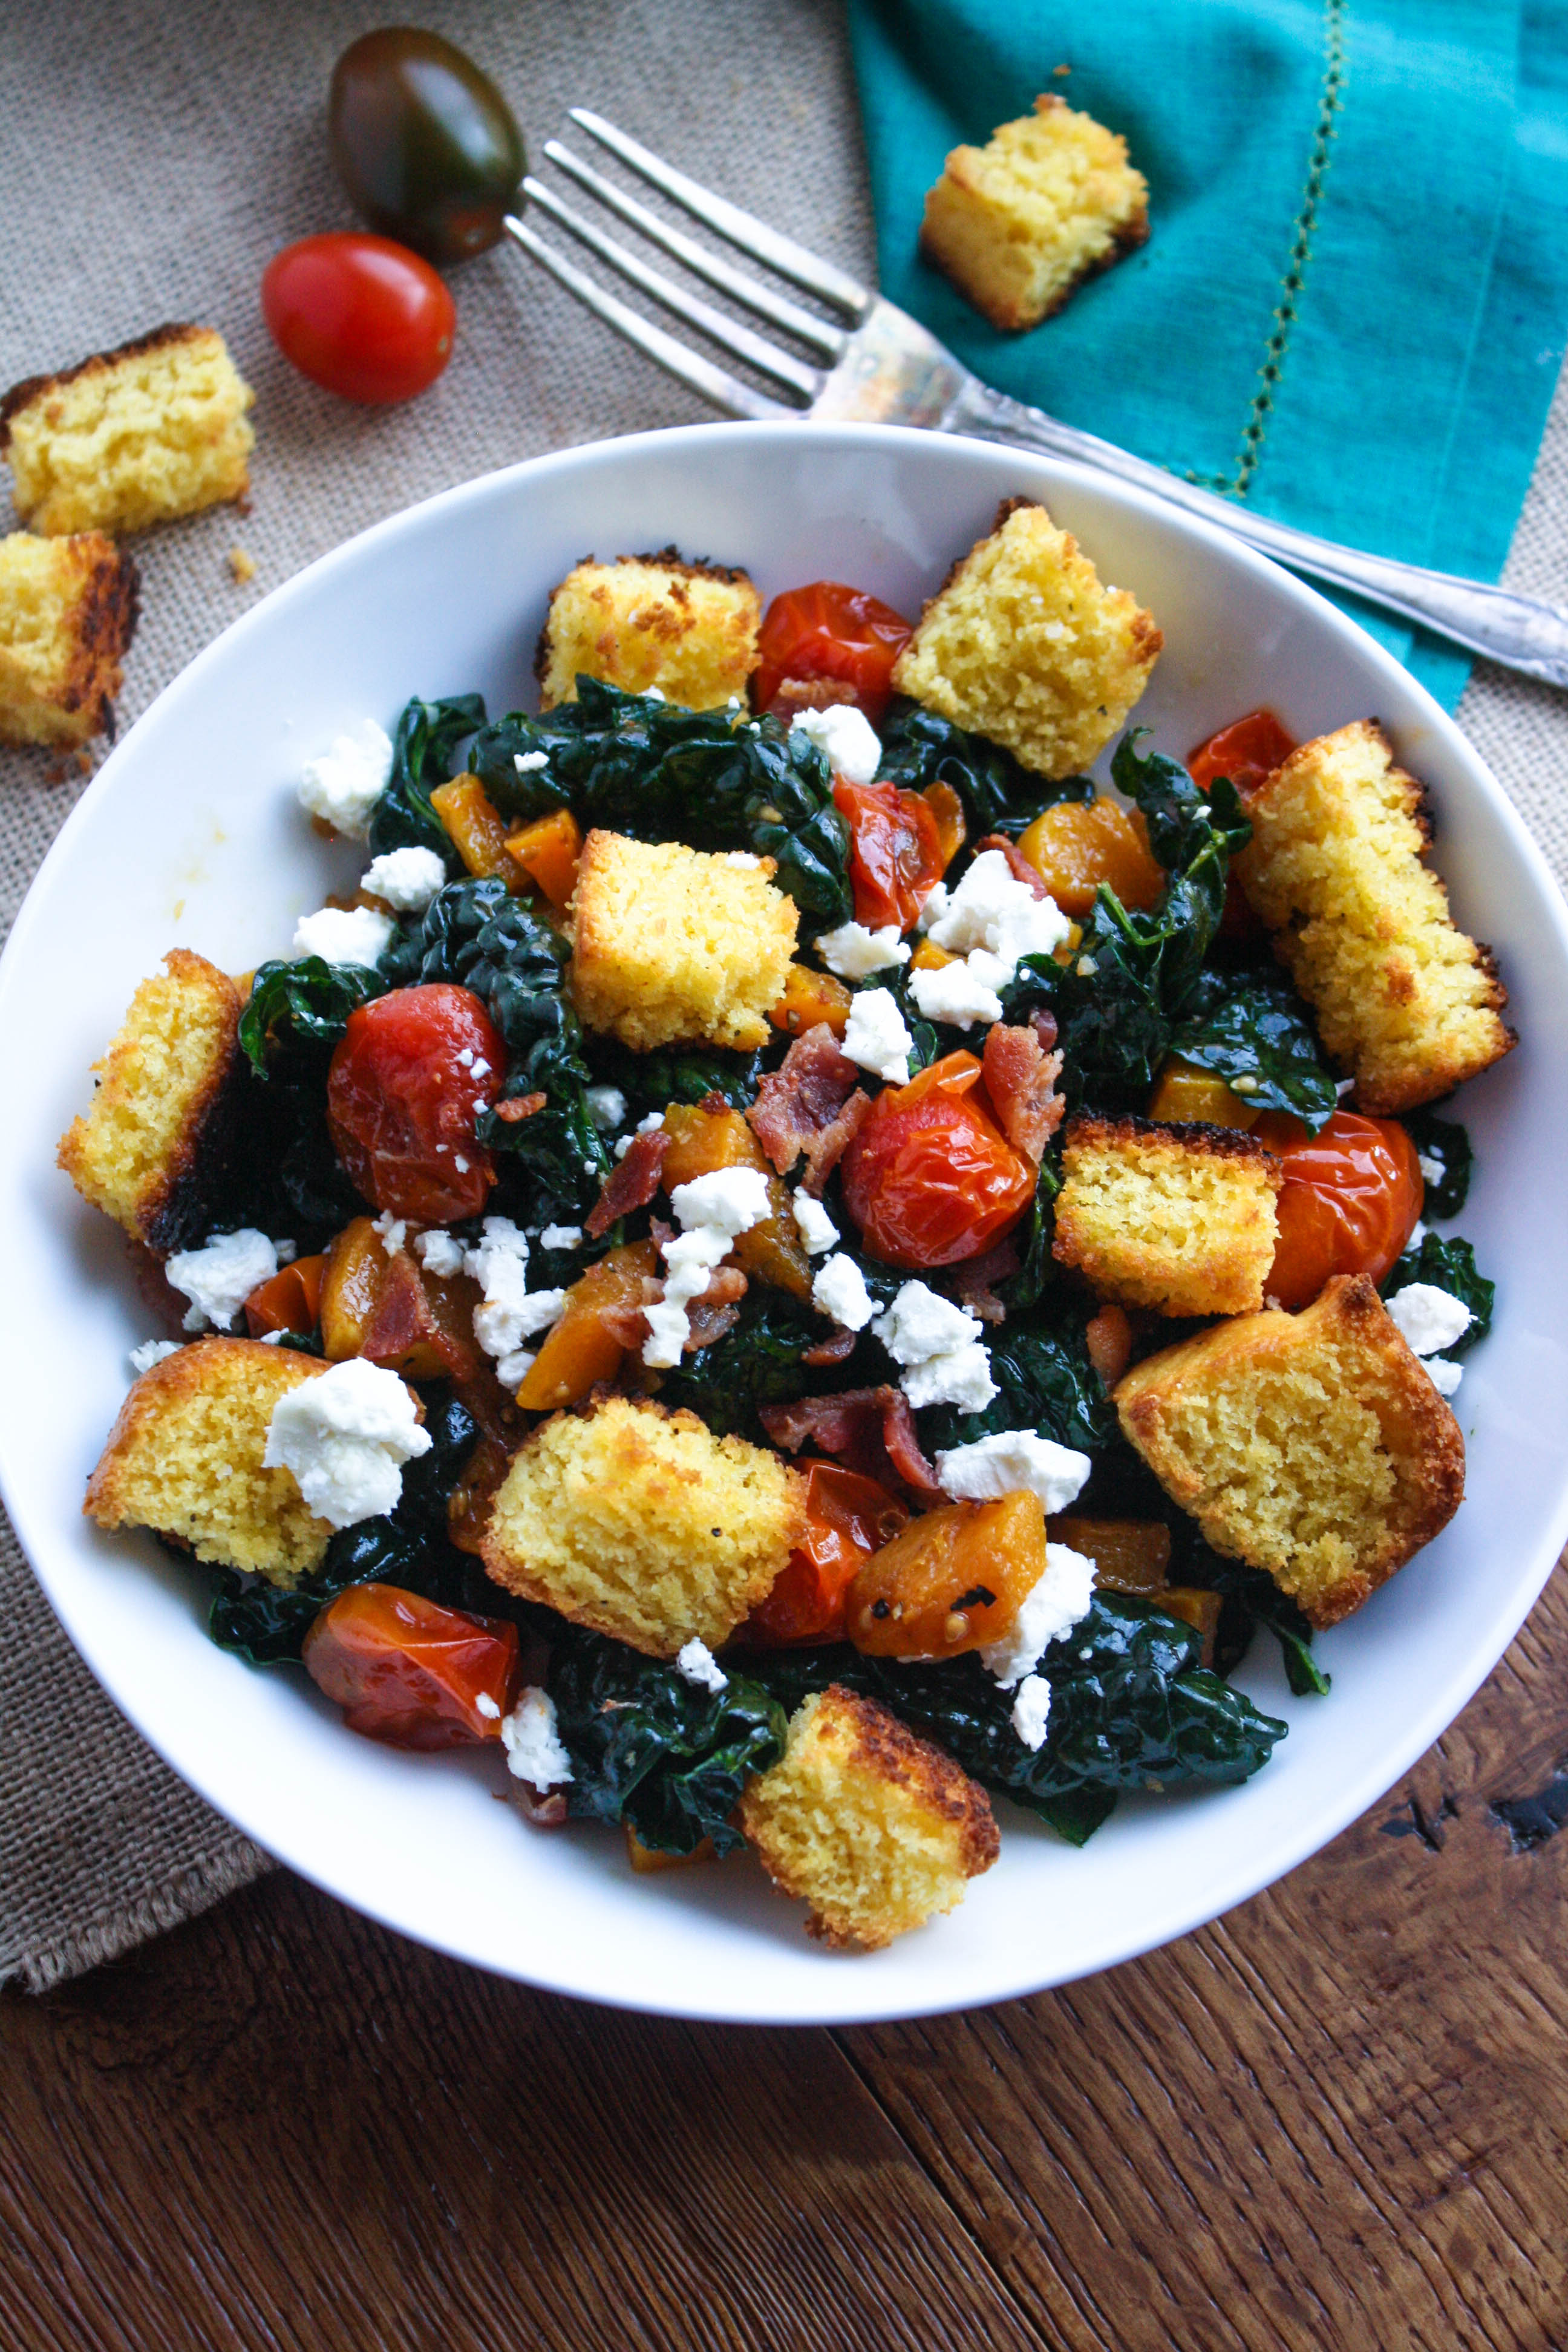 Kale and Cornbread Crouton Salad is a great salad to serve after an indulgent holiday! The cornbread croutons are a great addition to this kale salad.